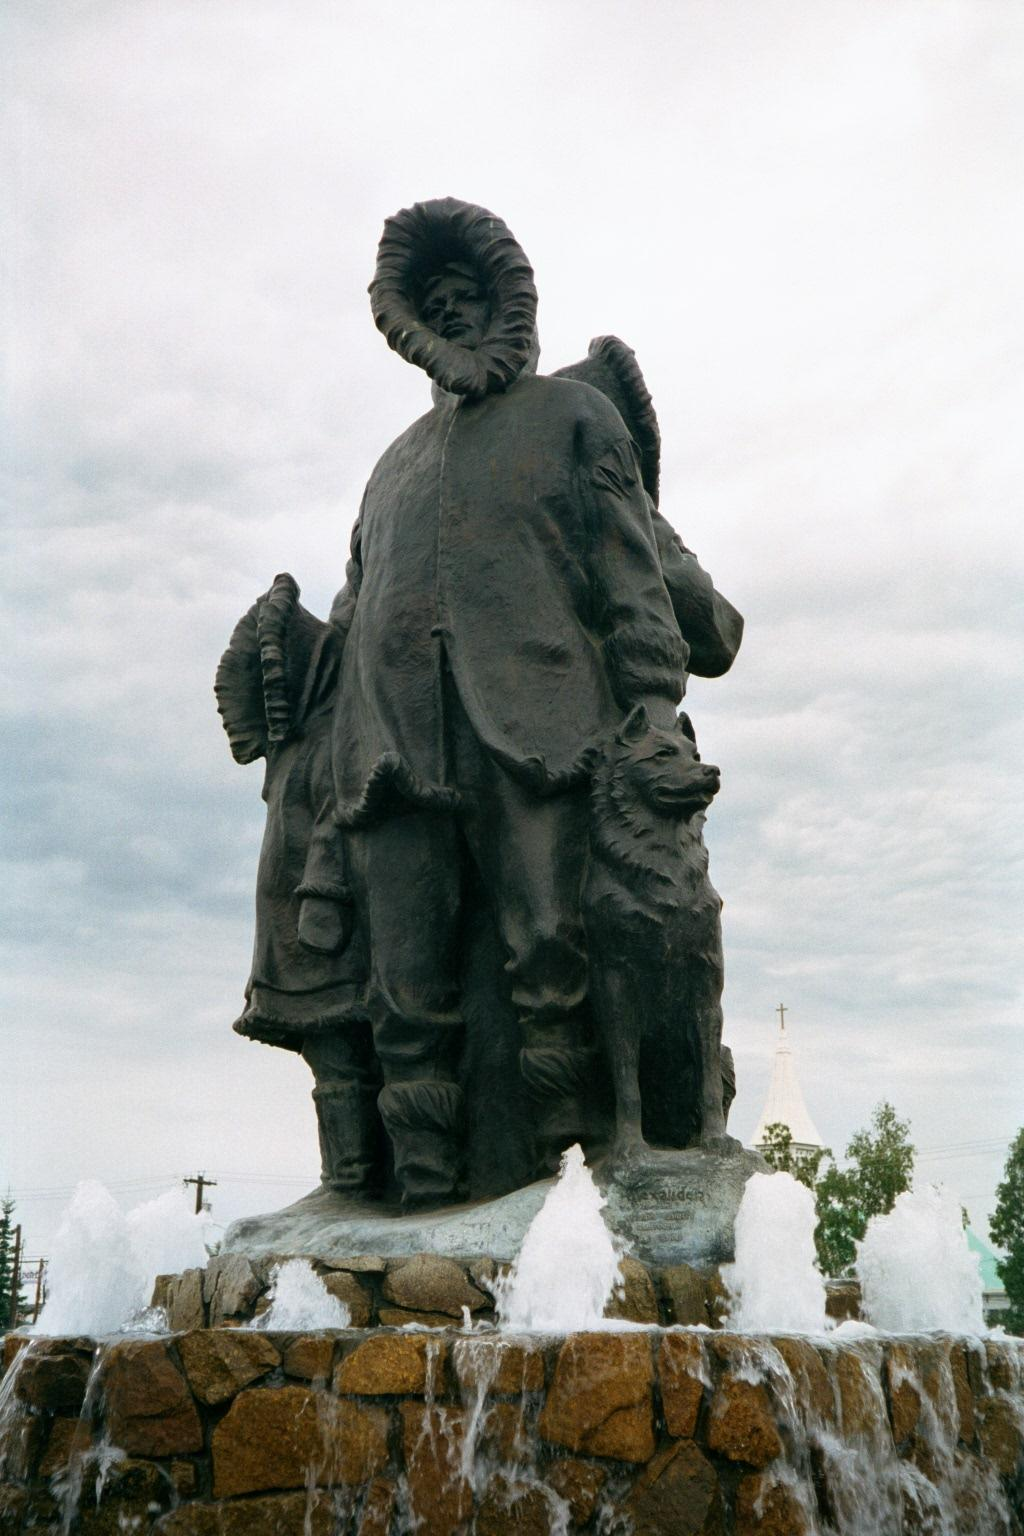 The First Family of Fairbanks statue inspires travelers to explore Alaska's wilderness (source: Joyce Longfellow)